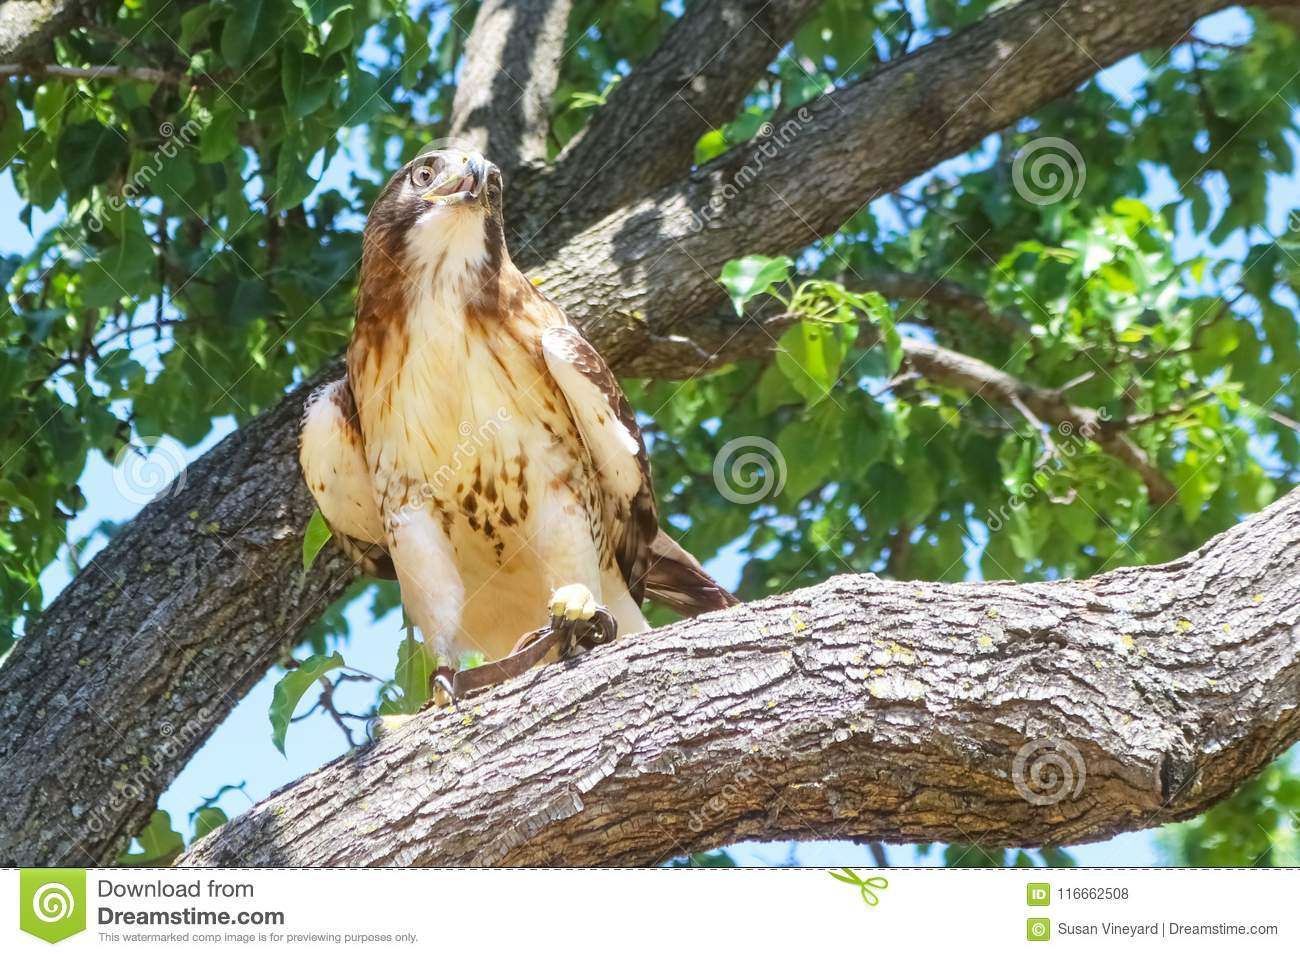 Trained falcon with leather jesses binding legs perched in a tree